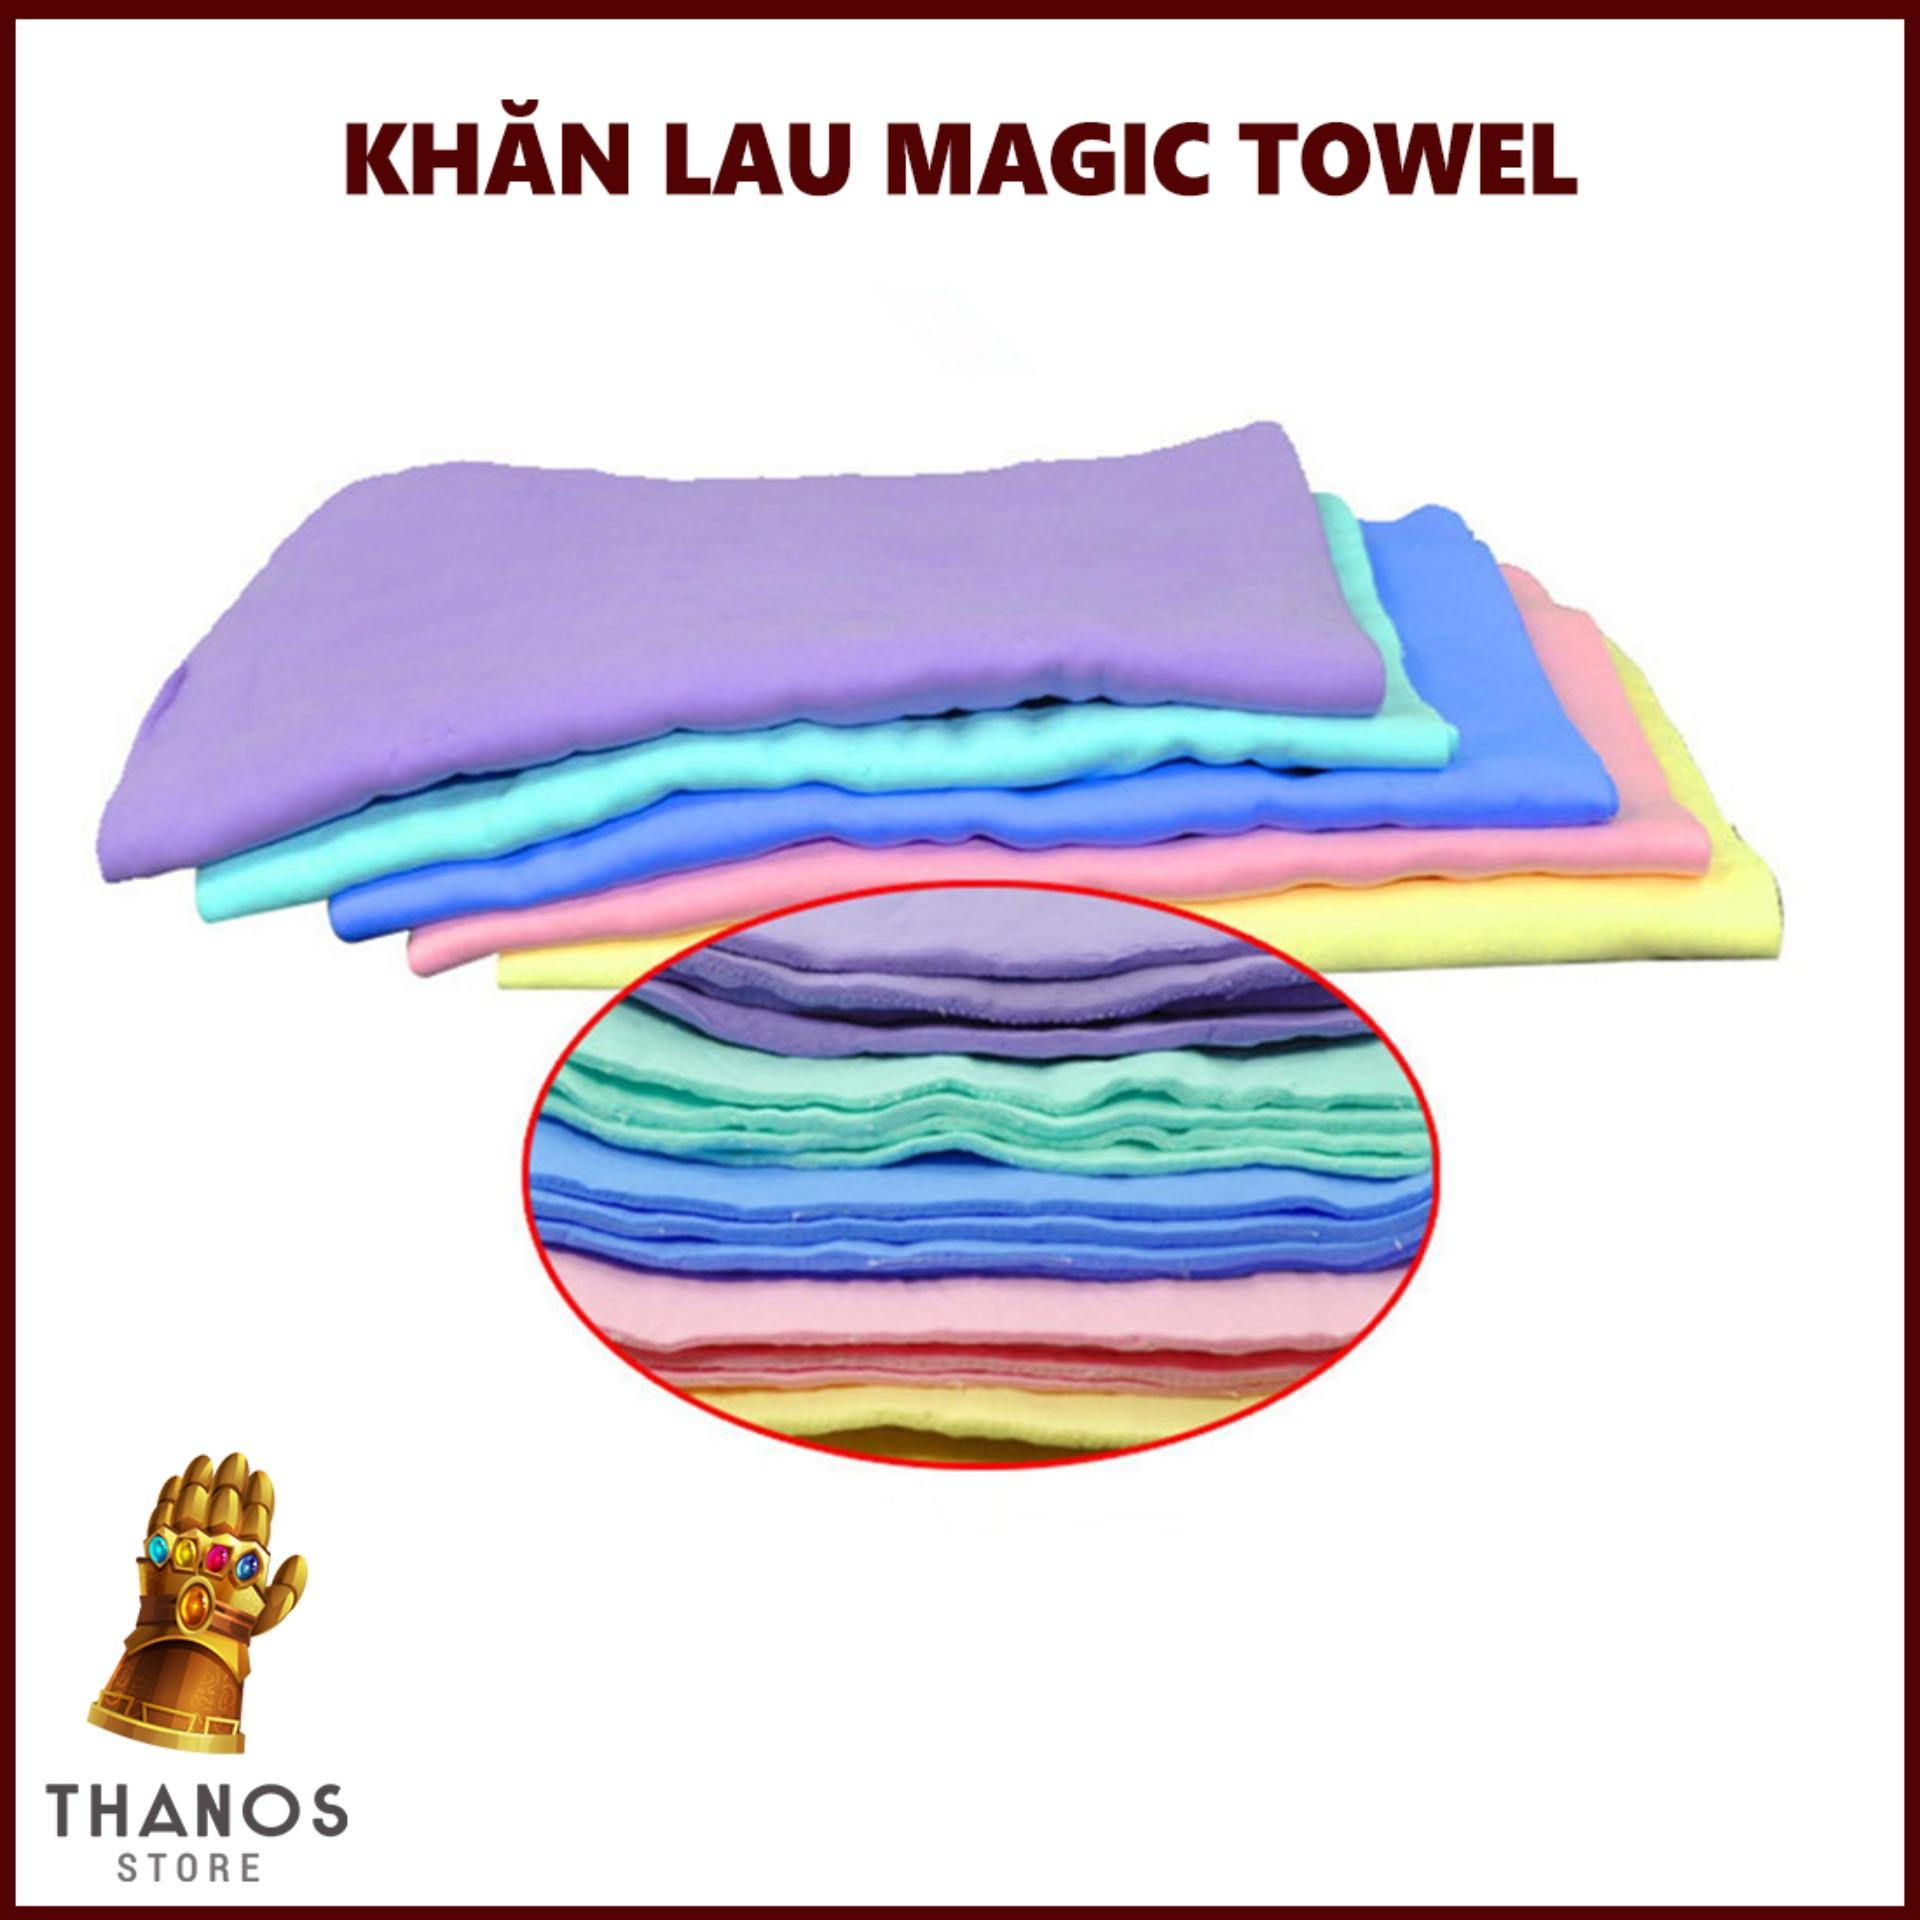 Khăn lau Magic Towel - Thanos Store